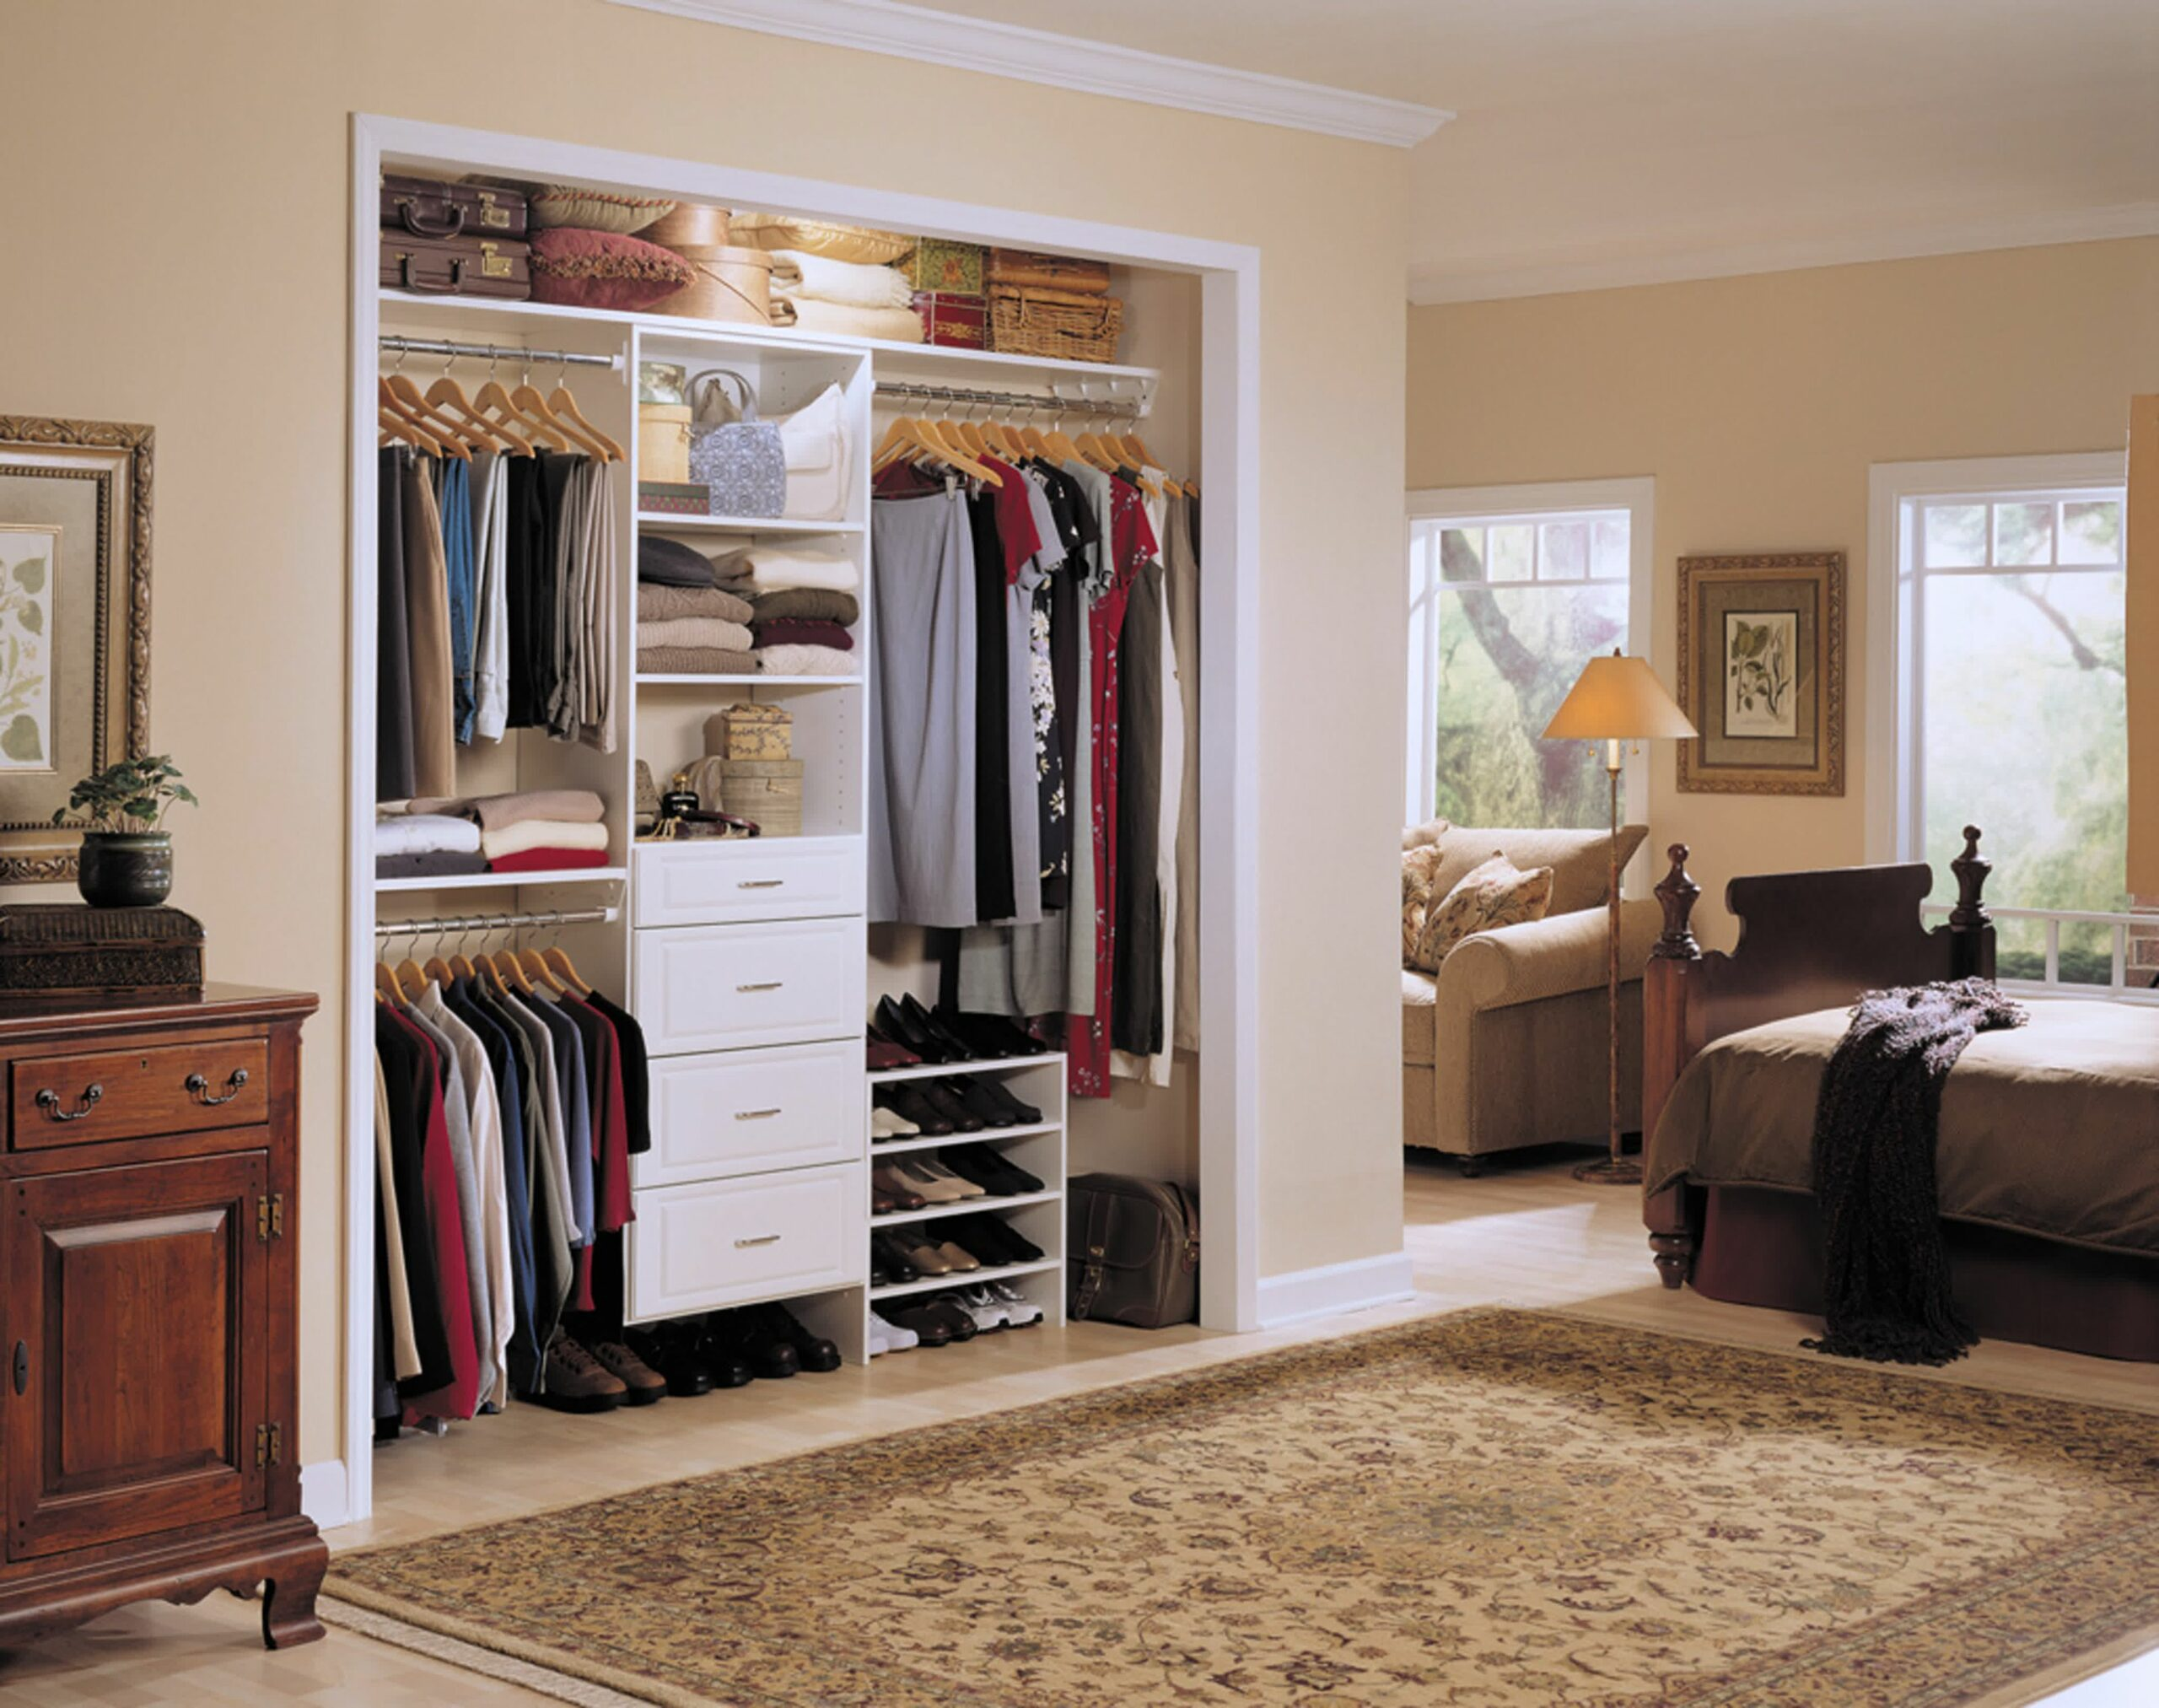 No Closet Solutions Bedroom Inspired Organize Without Dresser ..